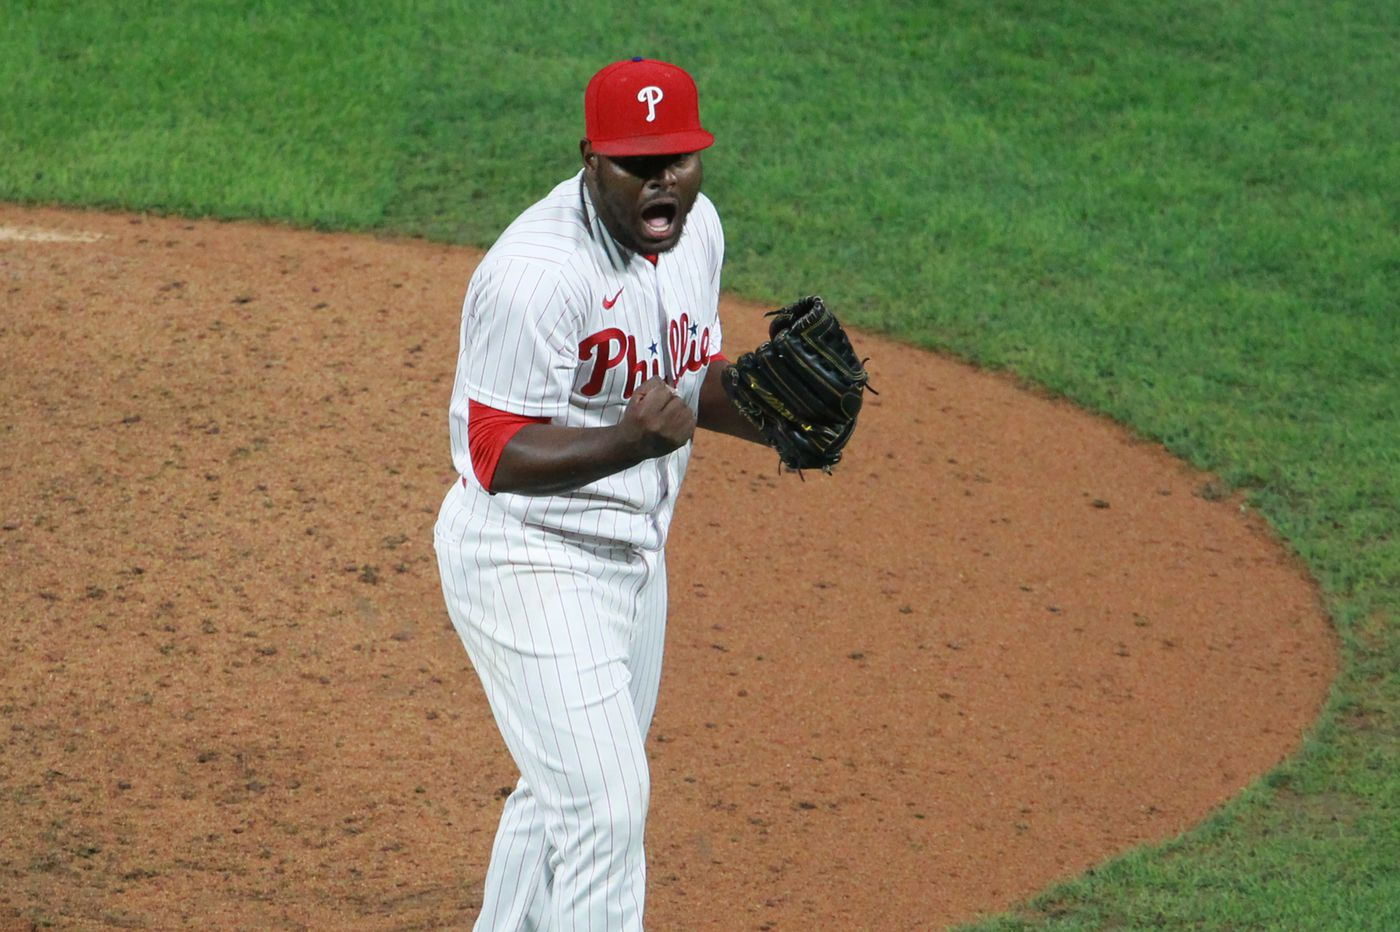 Phillies pitcher Héctor Neris reveals to North Philly students what inspired him to play baseball in the city